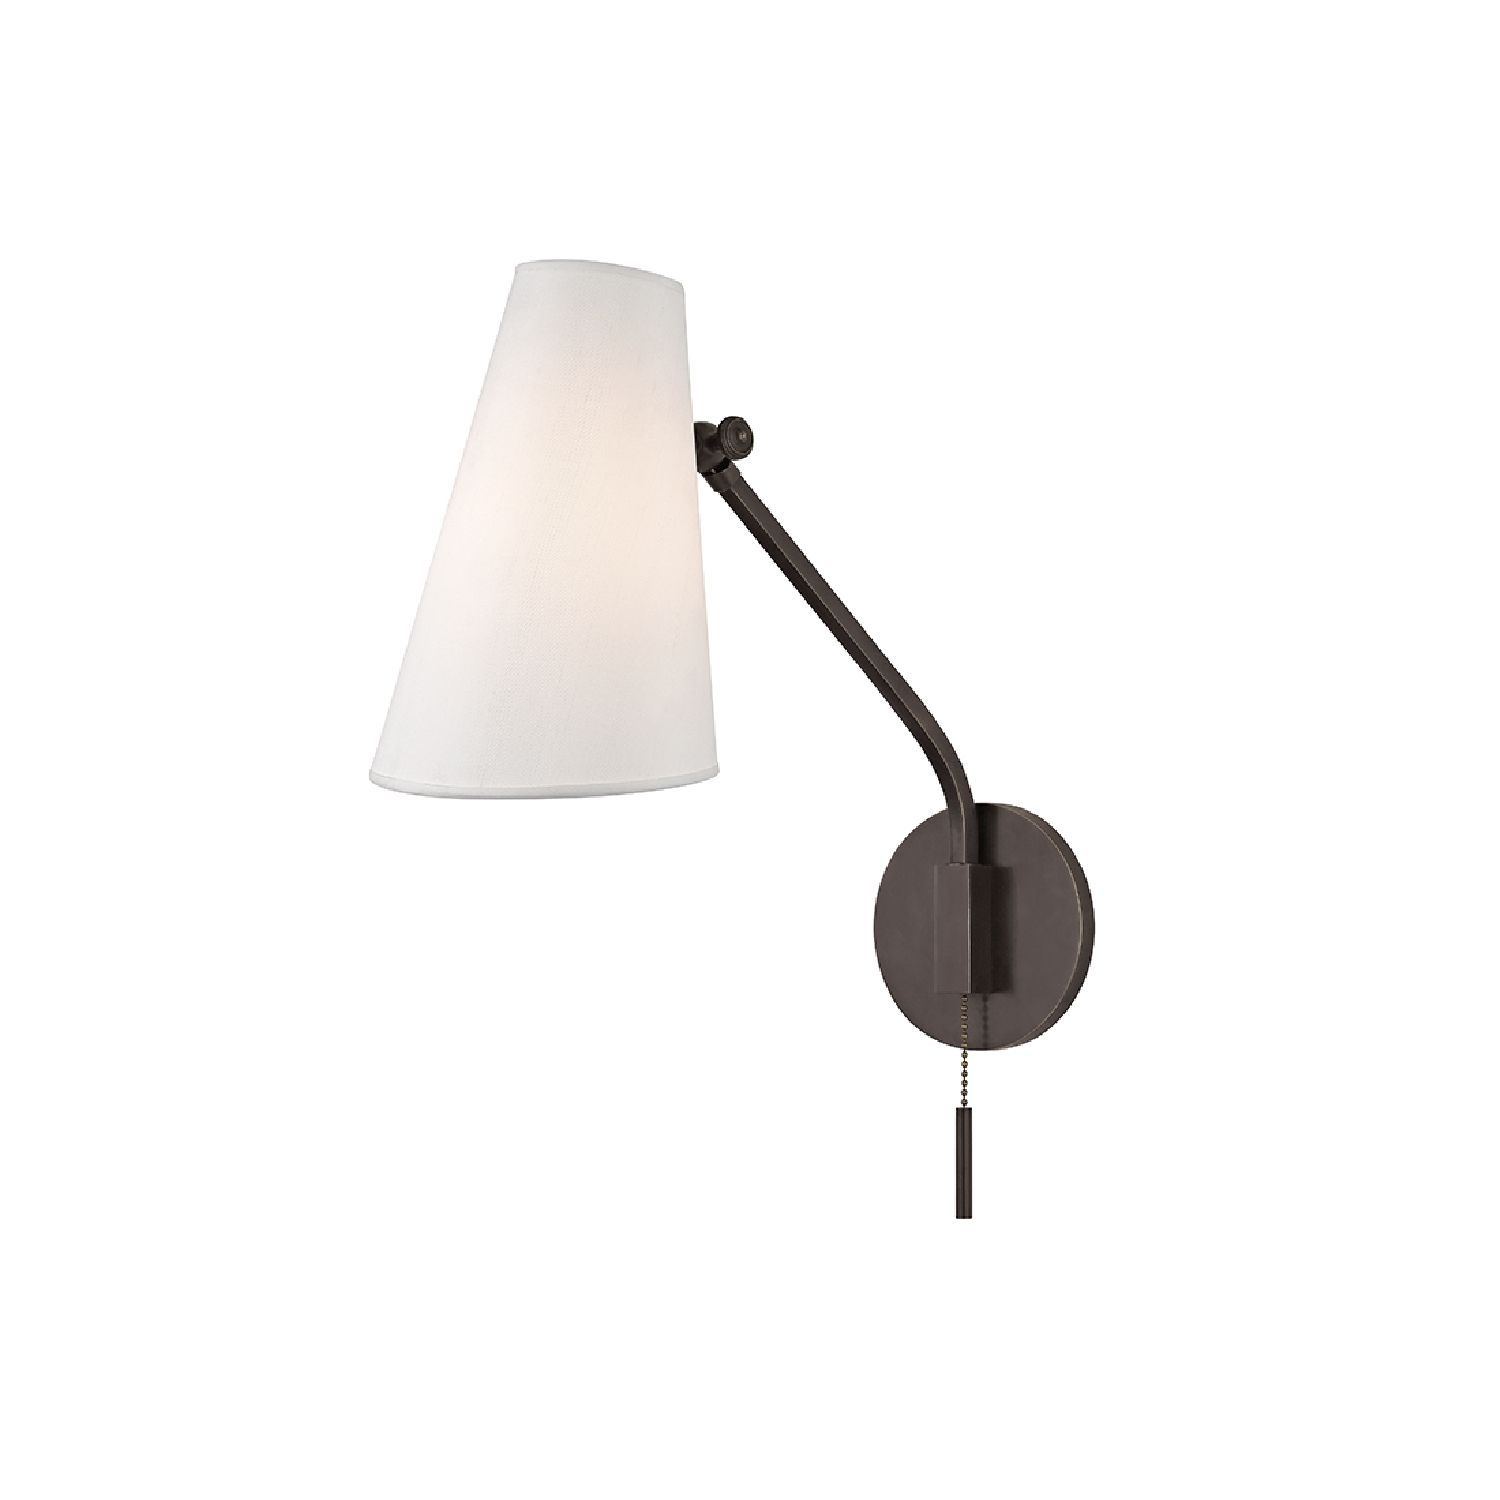 The Patten Swing Arm Wall Sconce comes in an old bronze finish and a ...